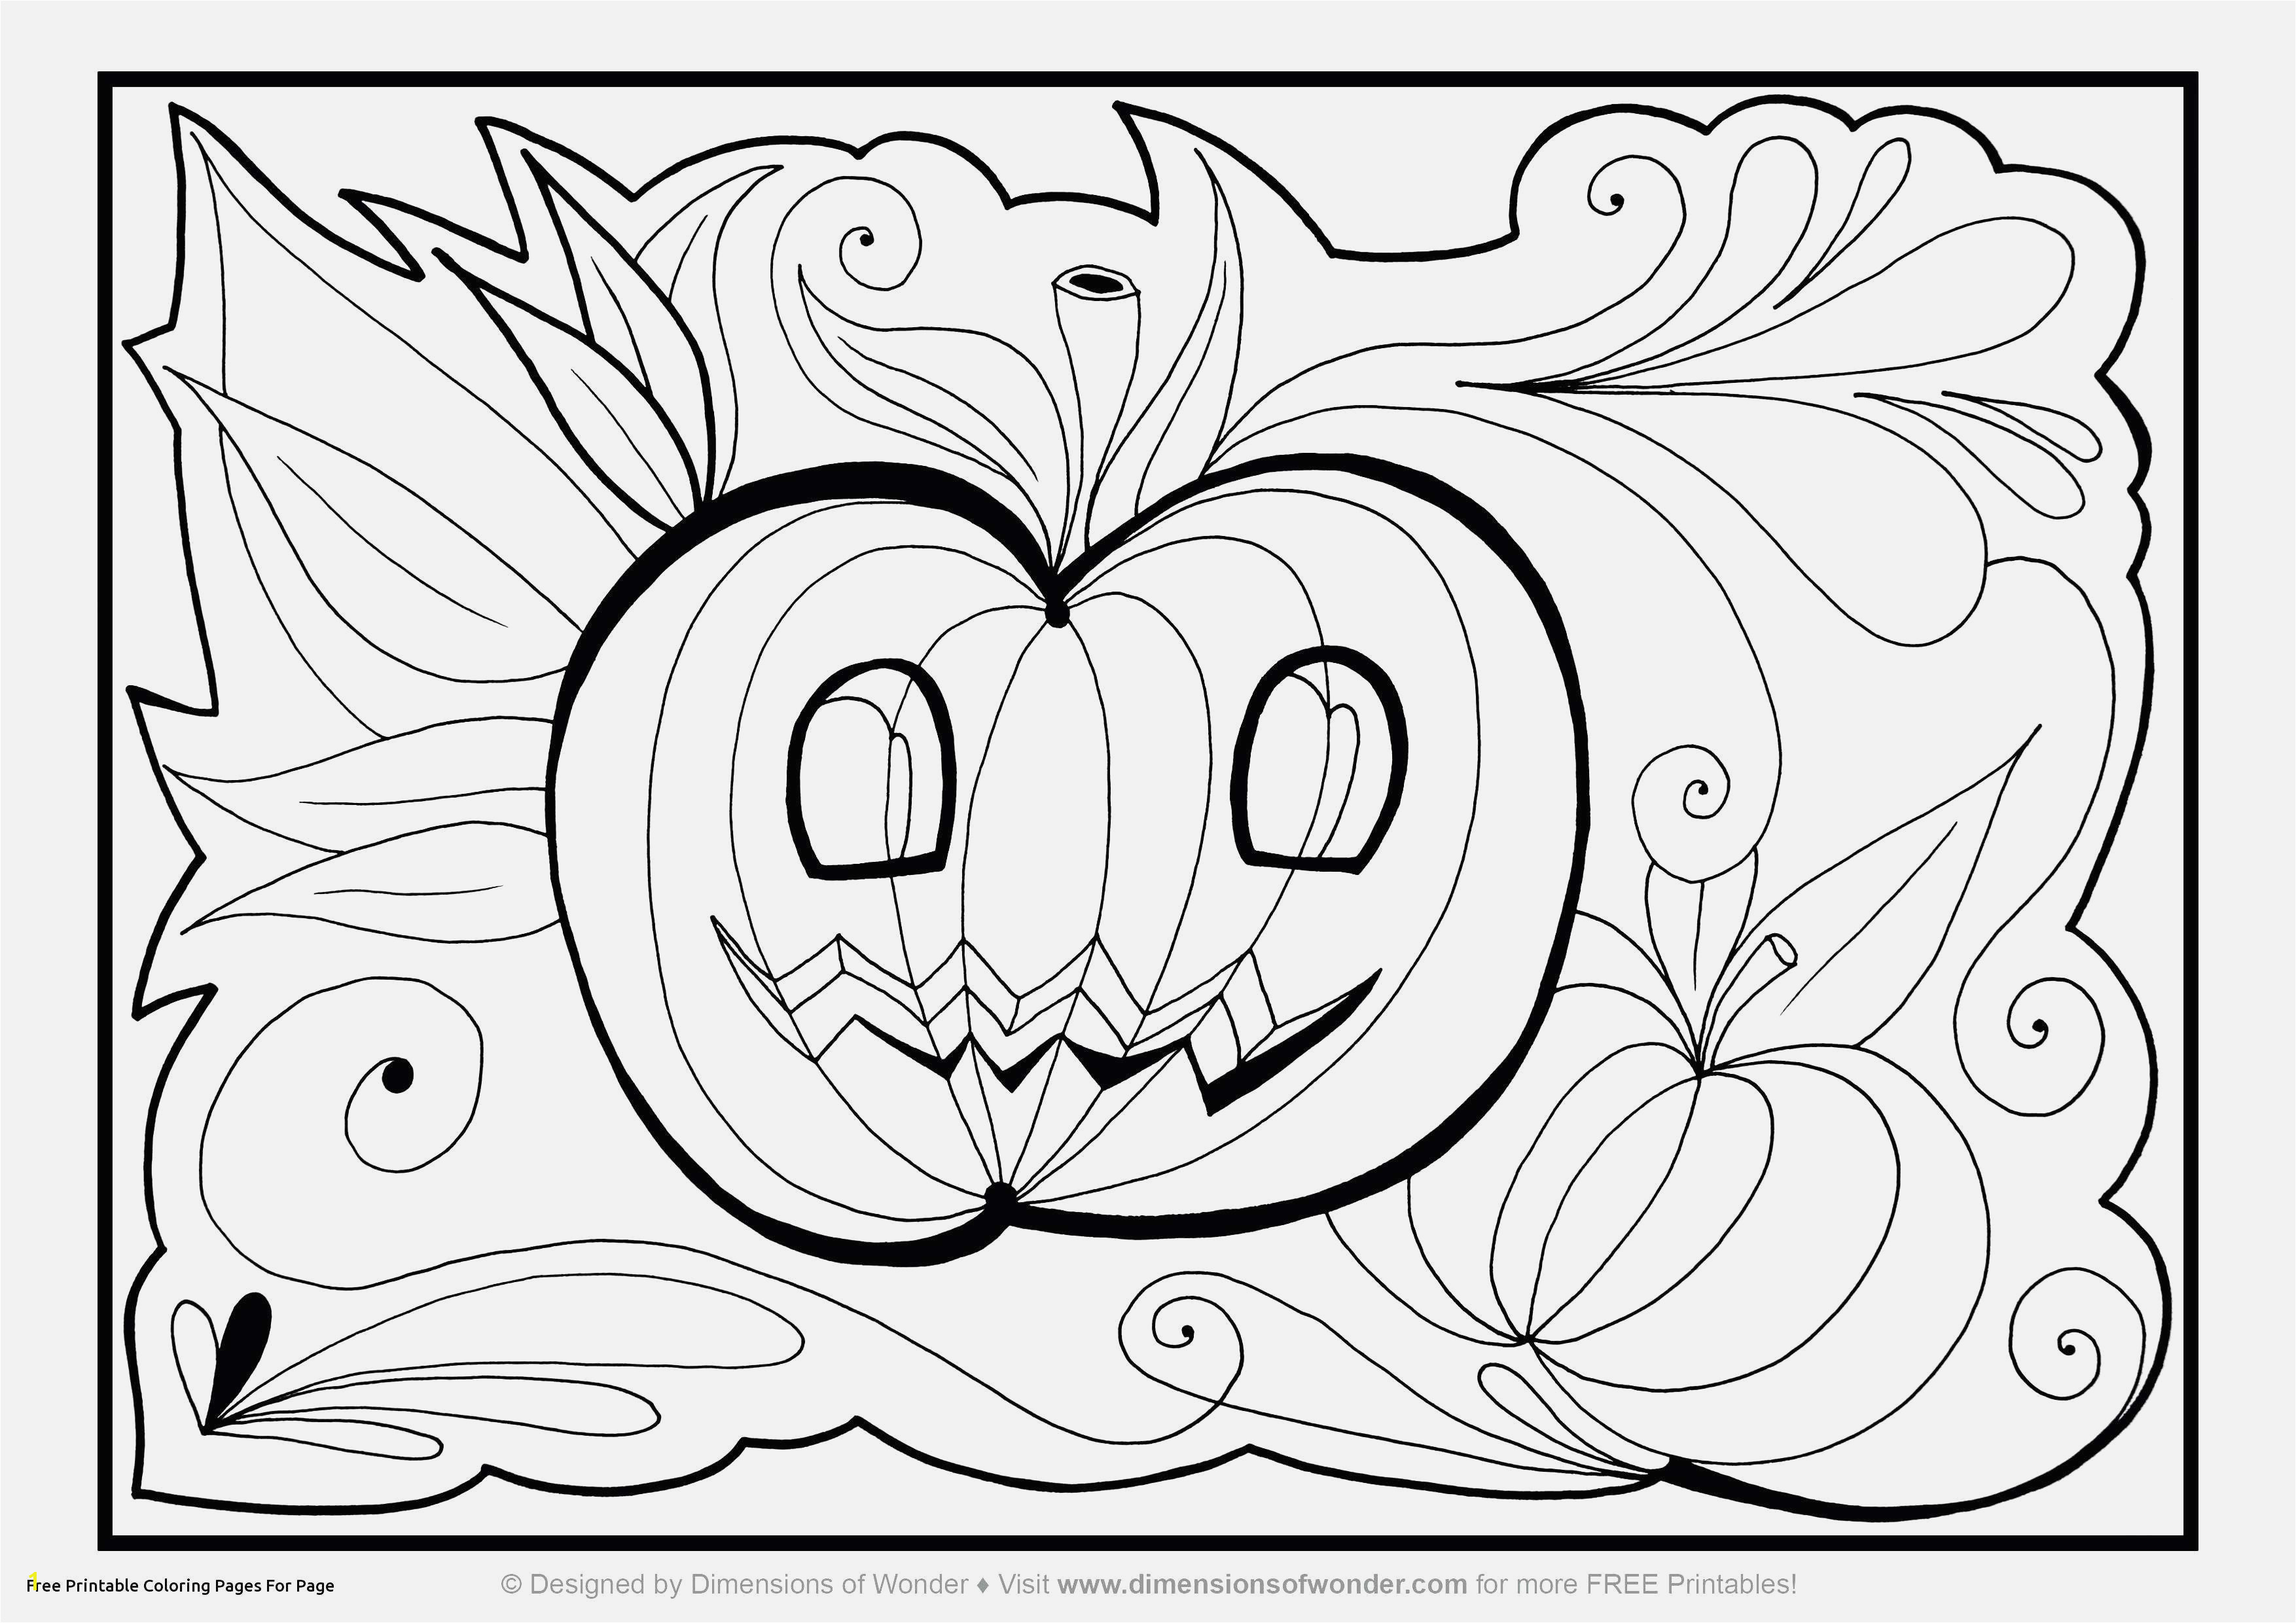 Free Fall Coloring Pages Free Fall Coloring Pages Adults Greatest 16 Coloring Pages Printable Free